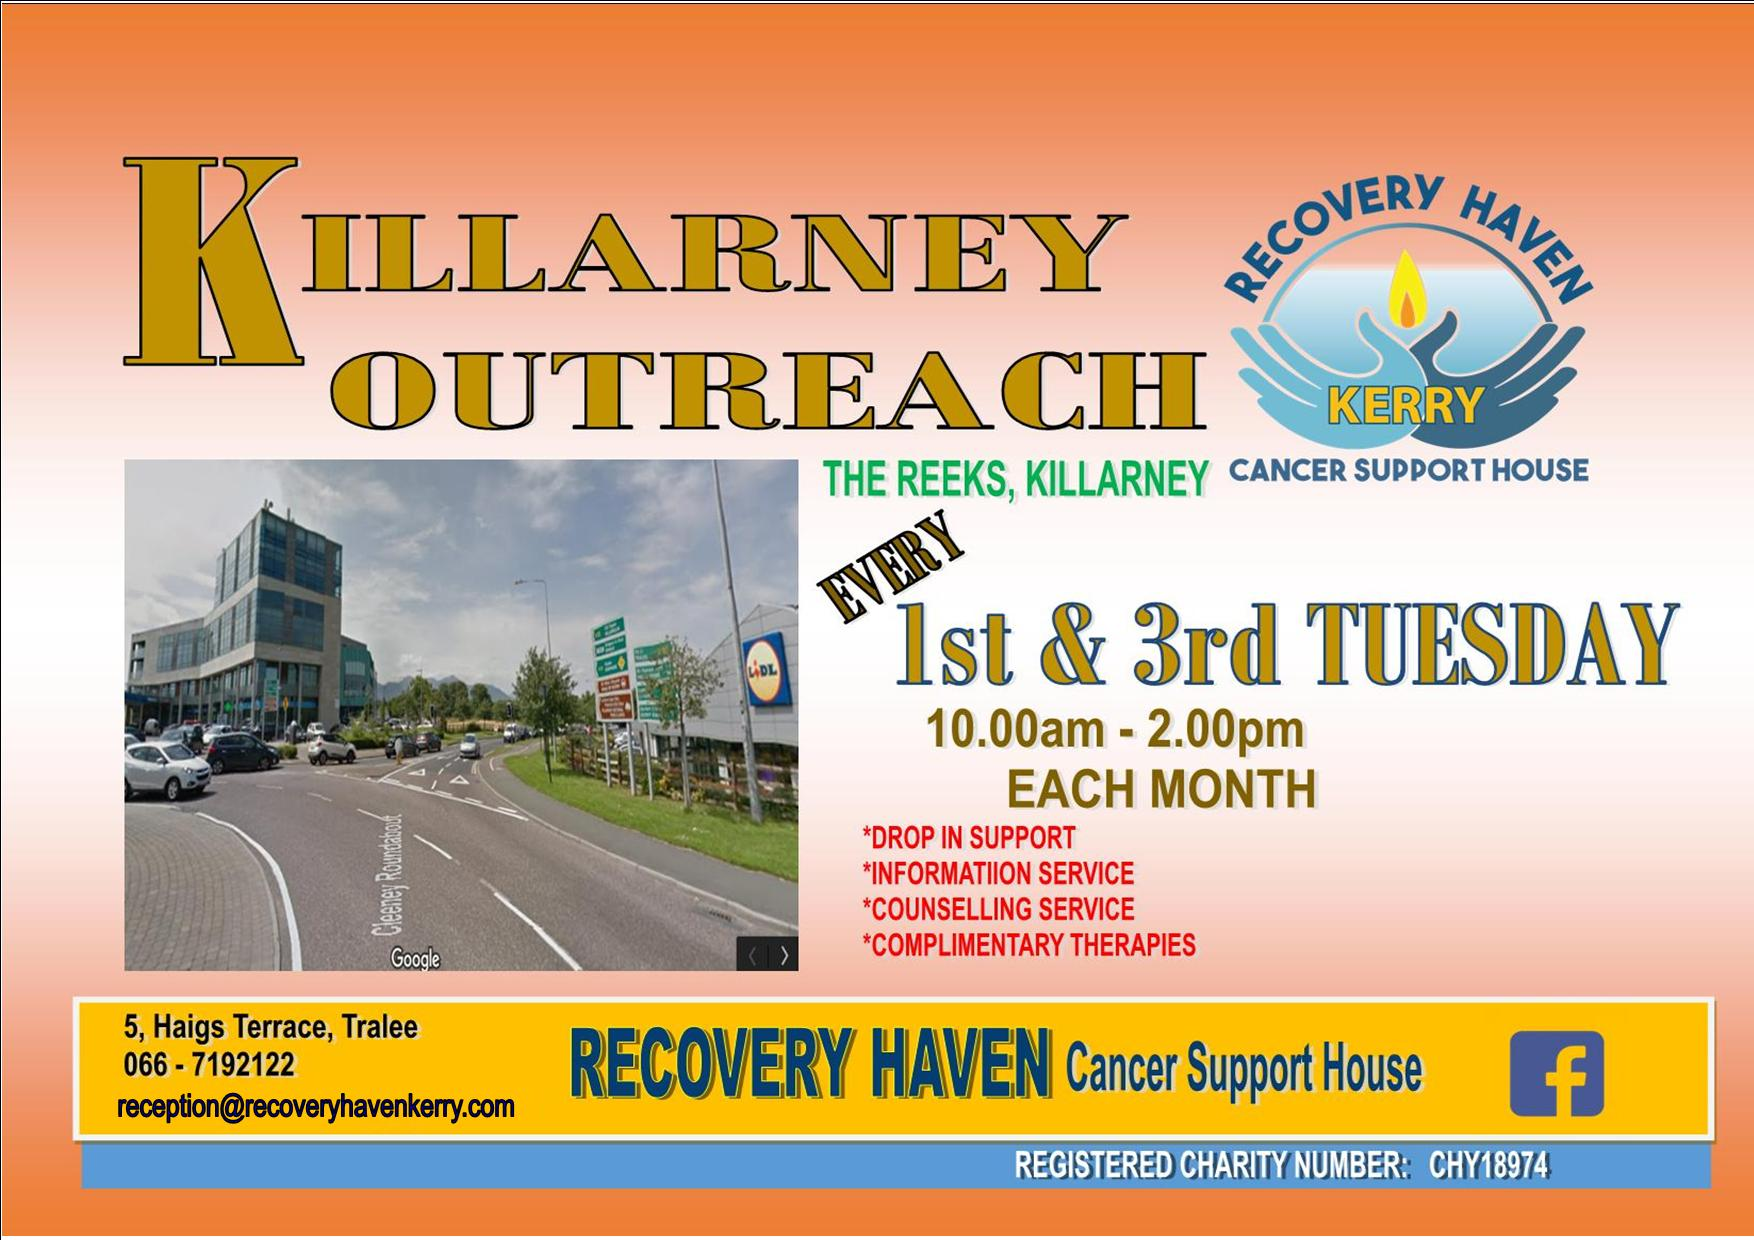 Killarney outreach